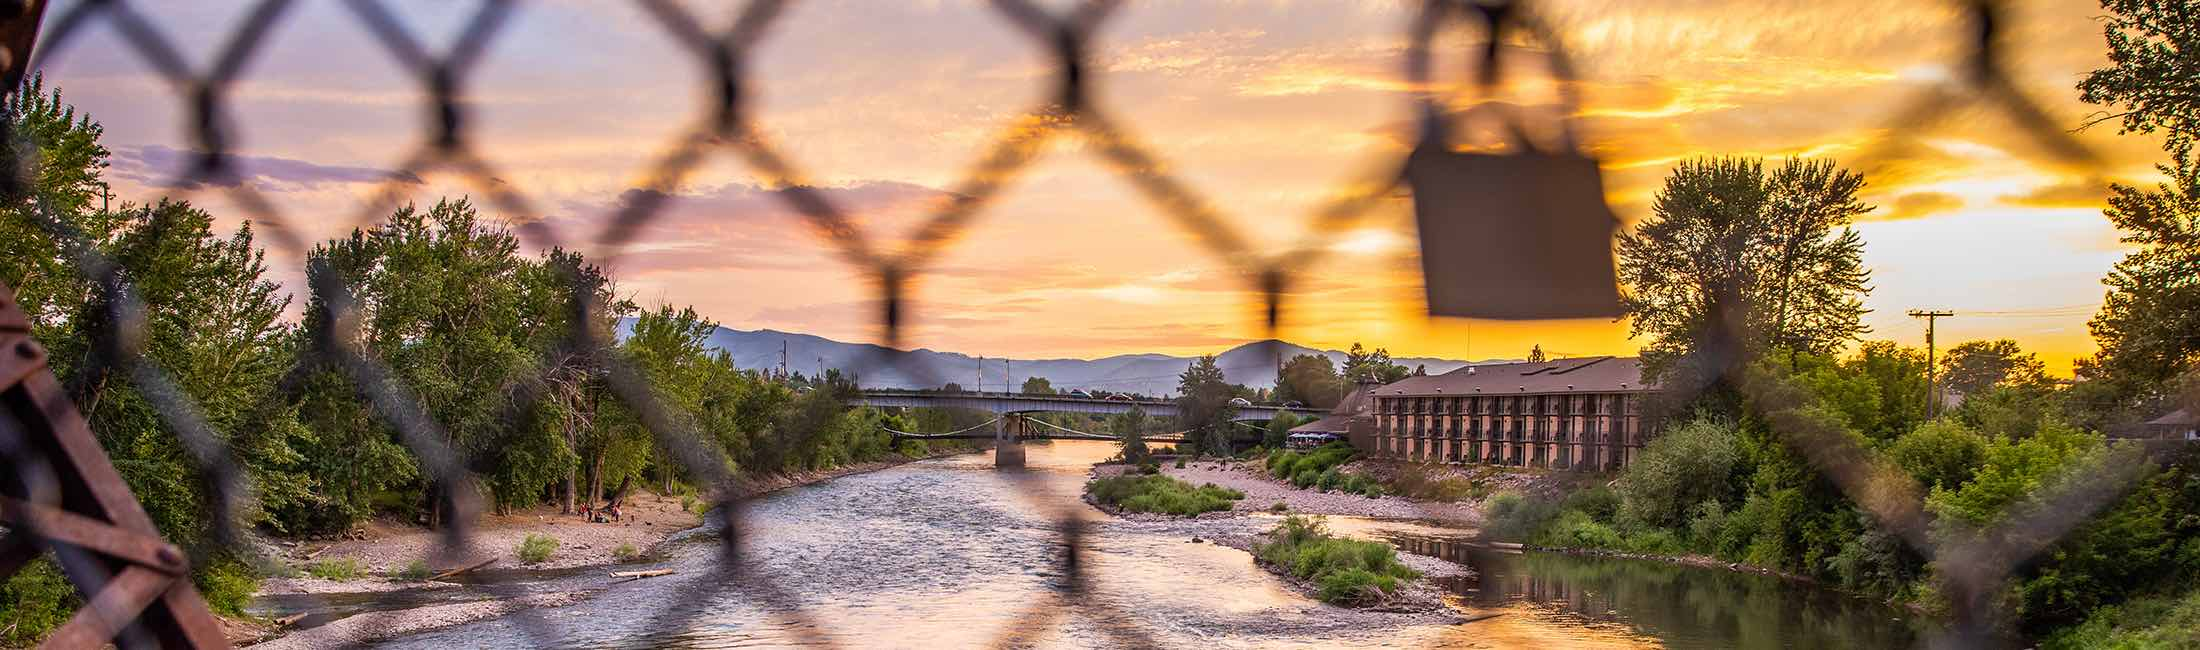 7 Ways Missoula Will Surprise You